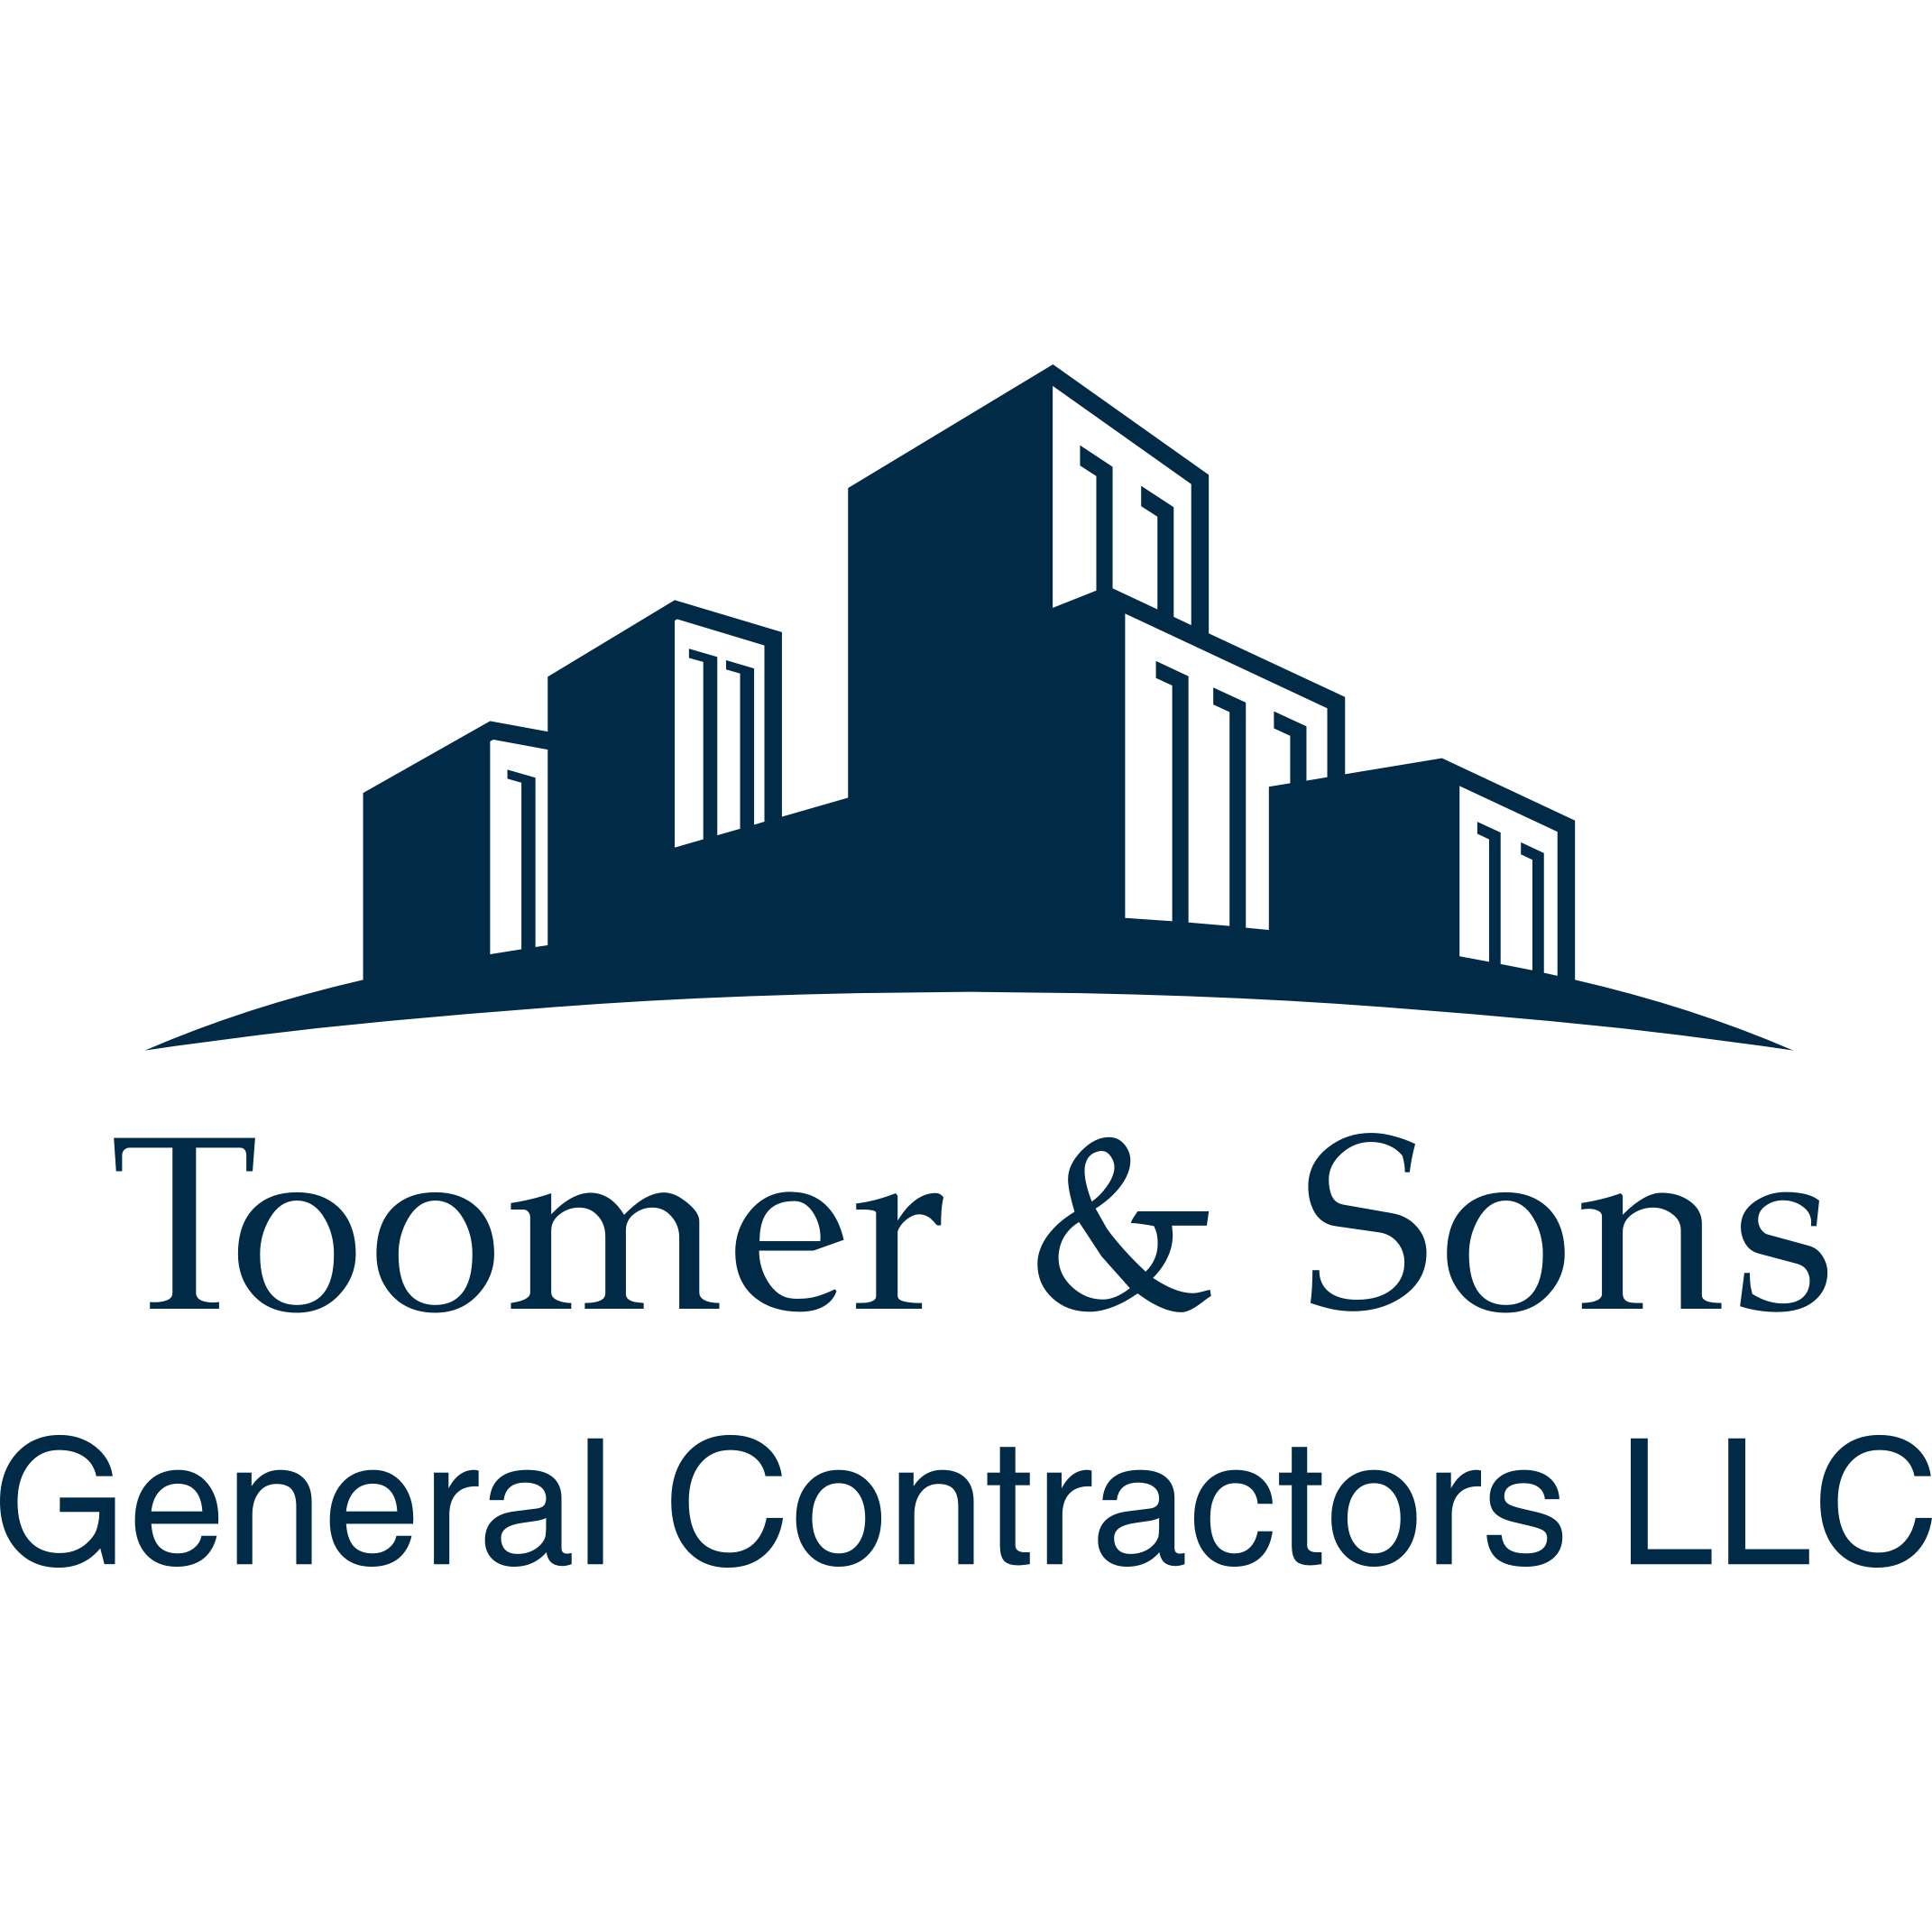 Toomer & Sons General Contractors LLC image 0